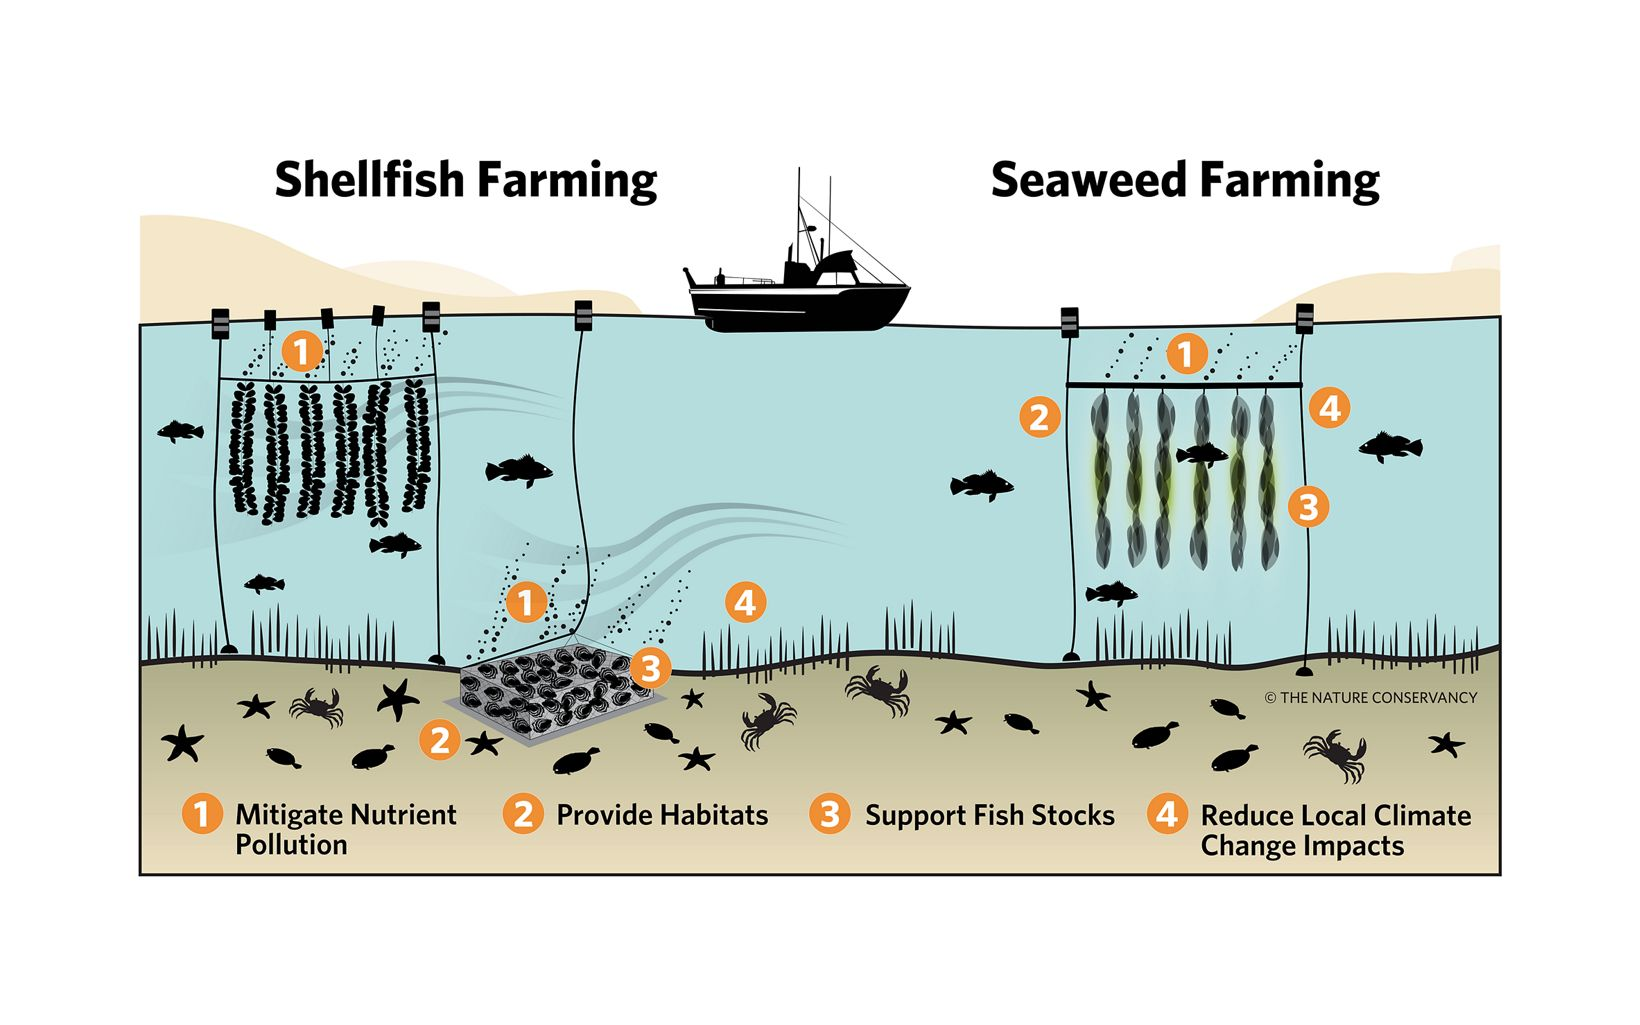 Of the three sectors chosen for deeper analysis, near-shore bivalve production and seaweed aquaculture offers the clearest environmental value proposition.